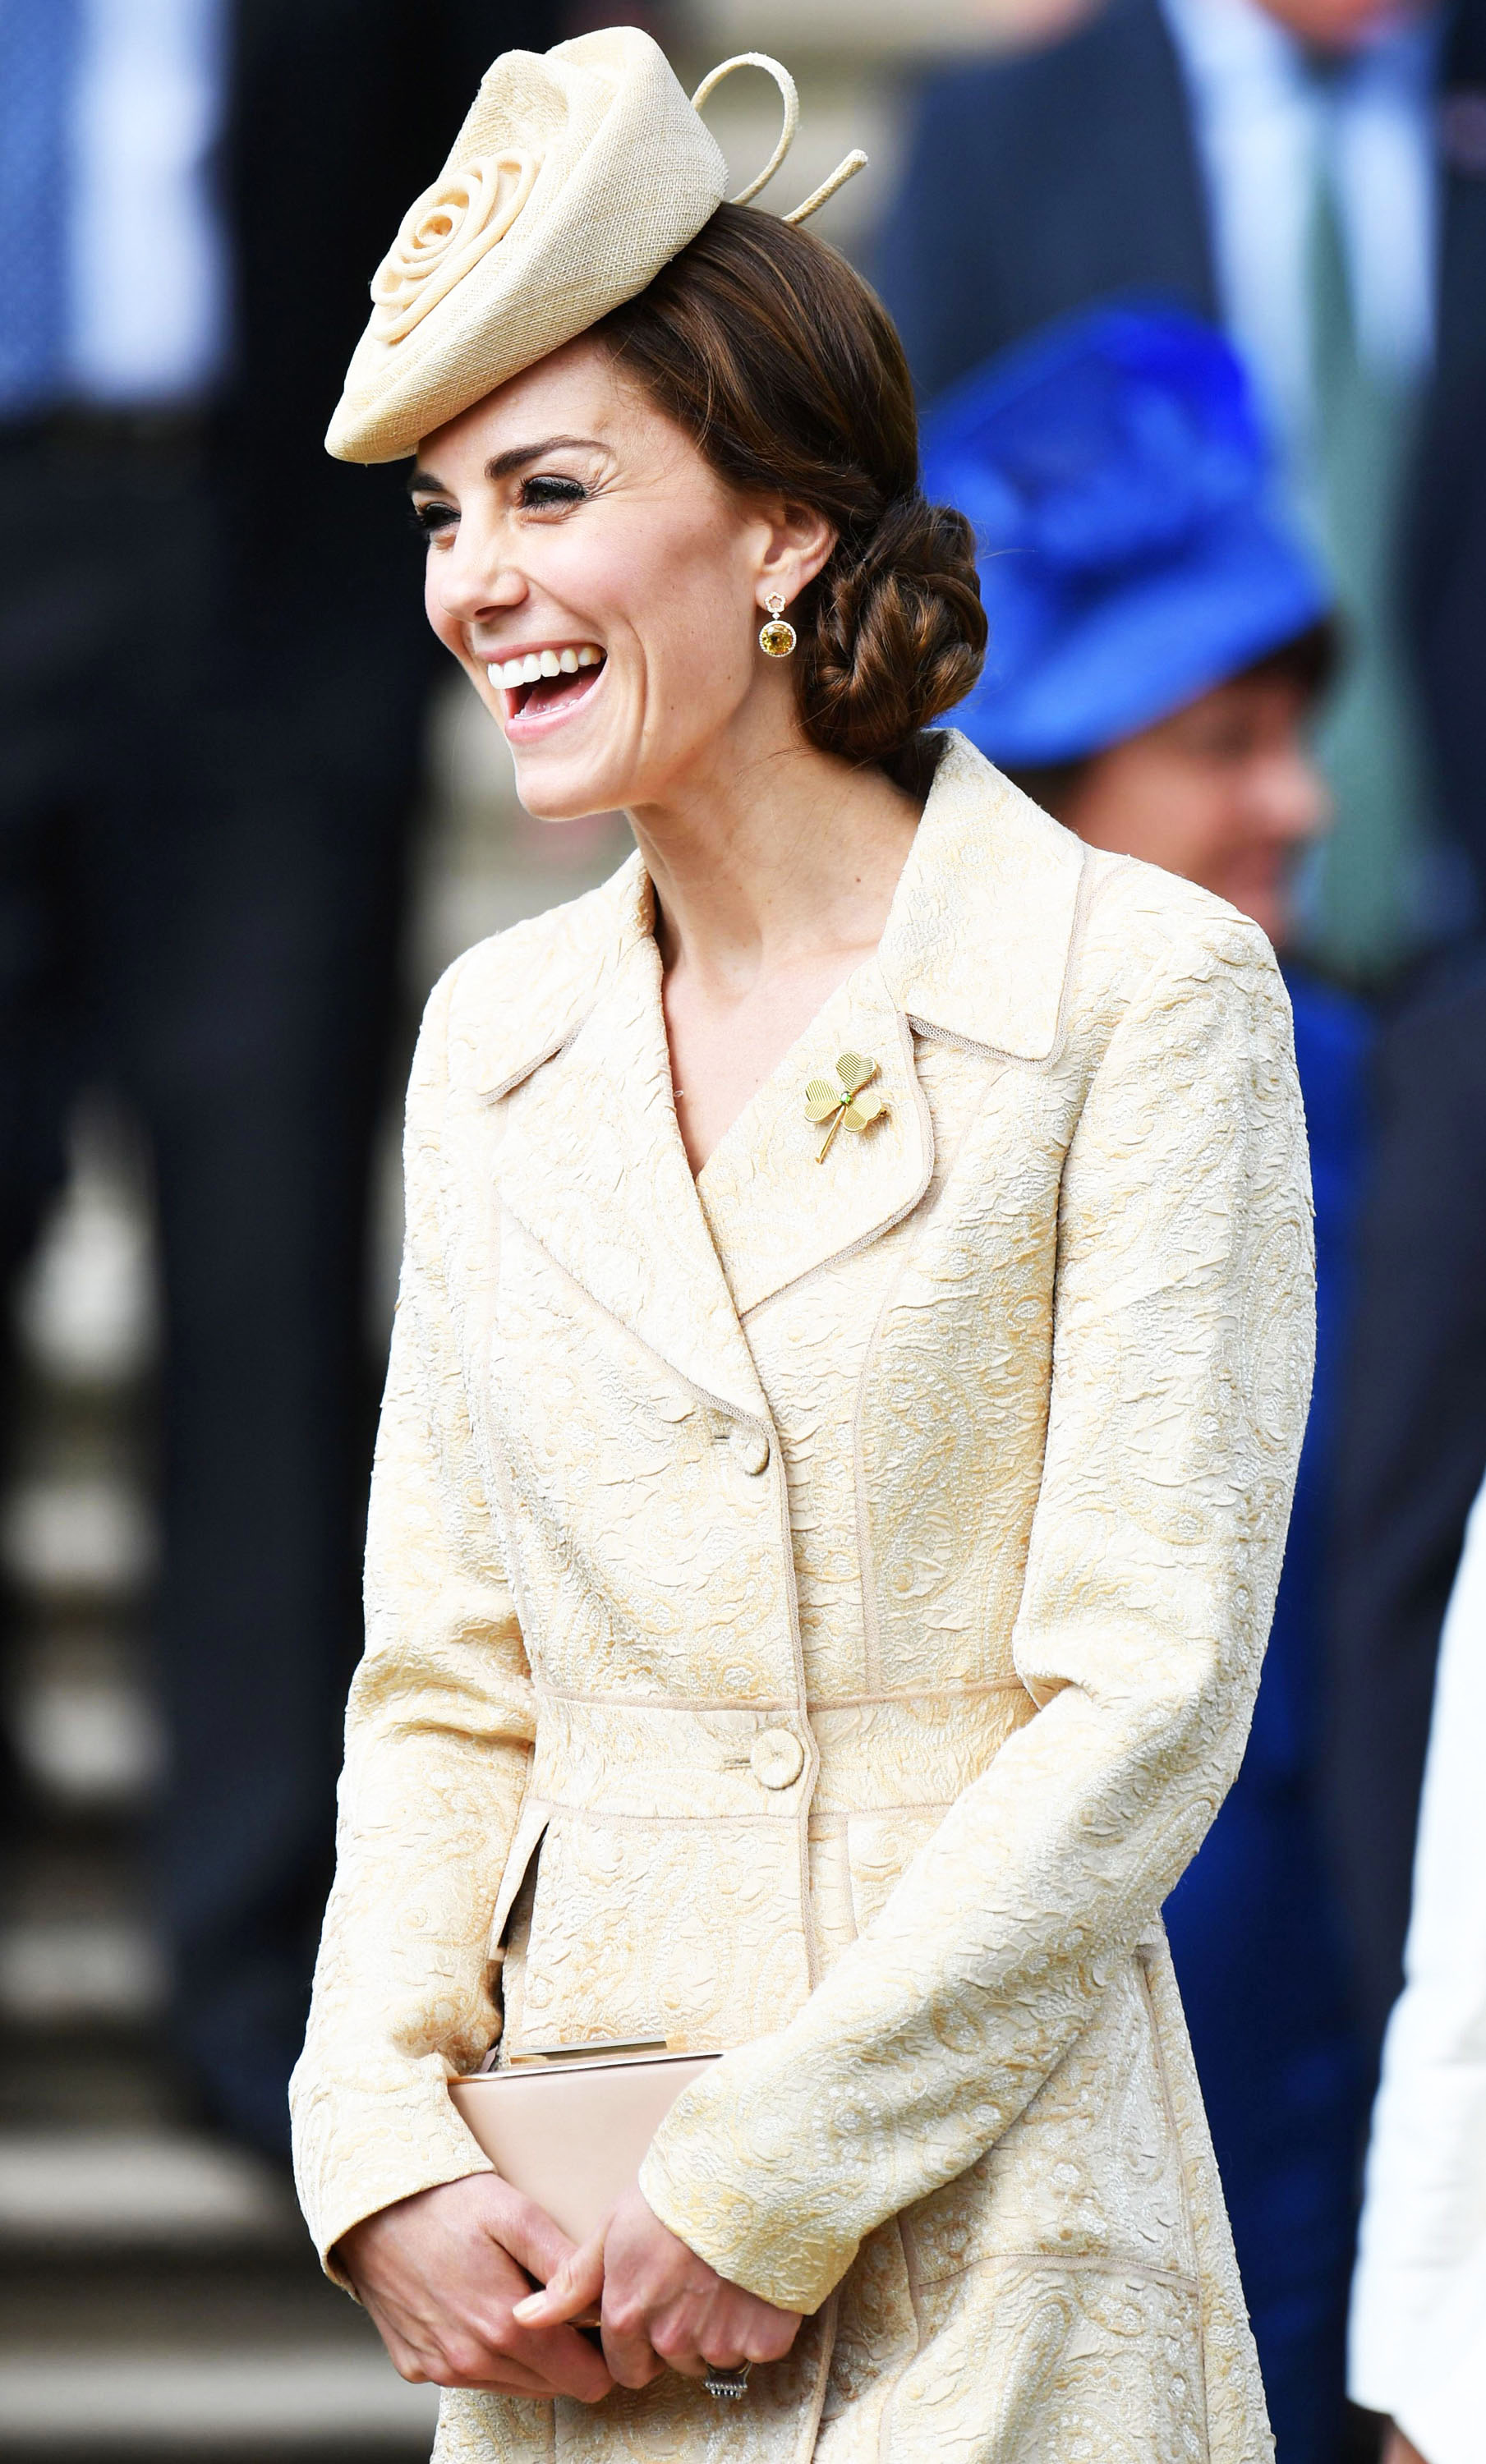 e4e6b20359f7 Kate Middleton Wows in 8 Outfits Over 7 Days — See Her Stunning ...